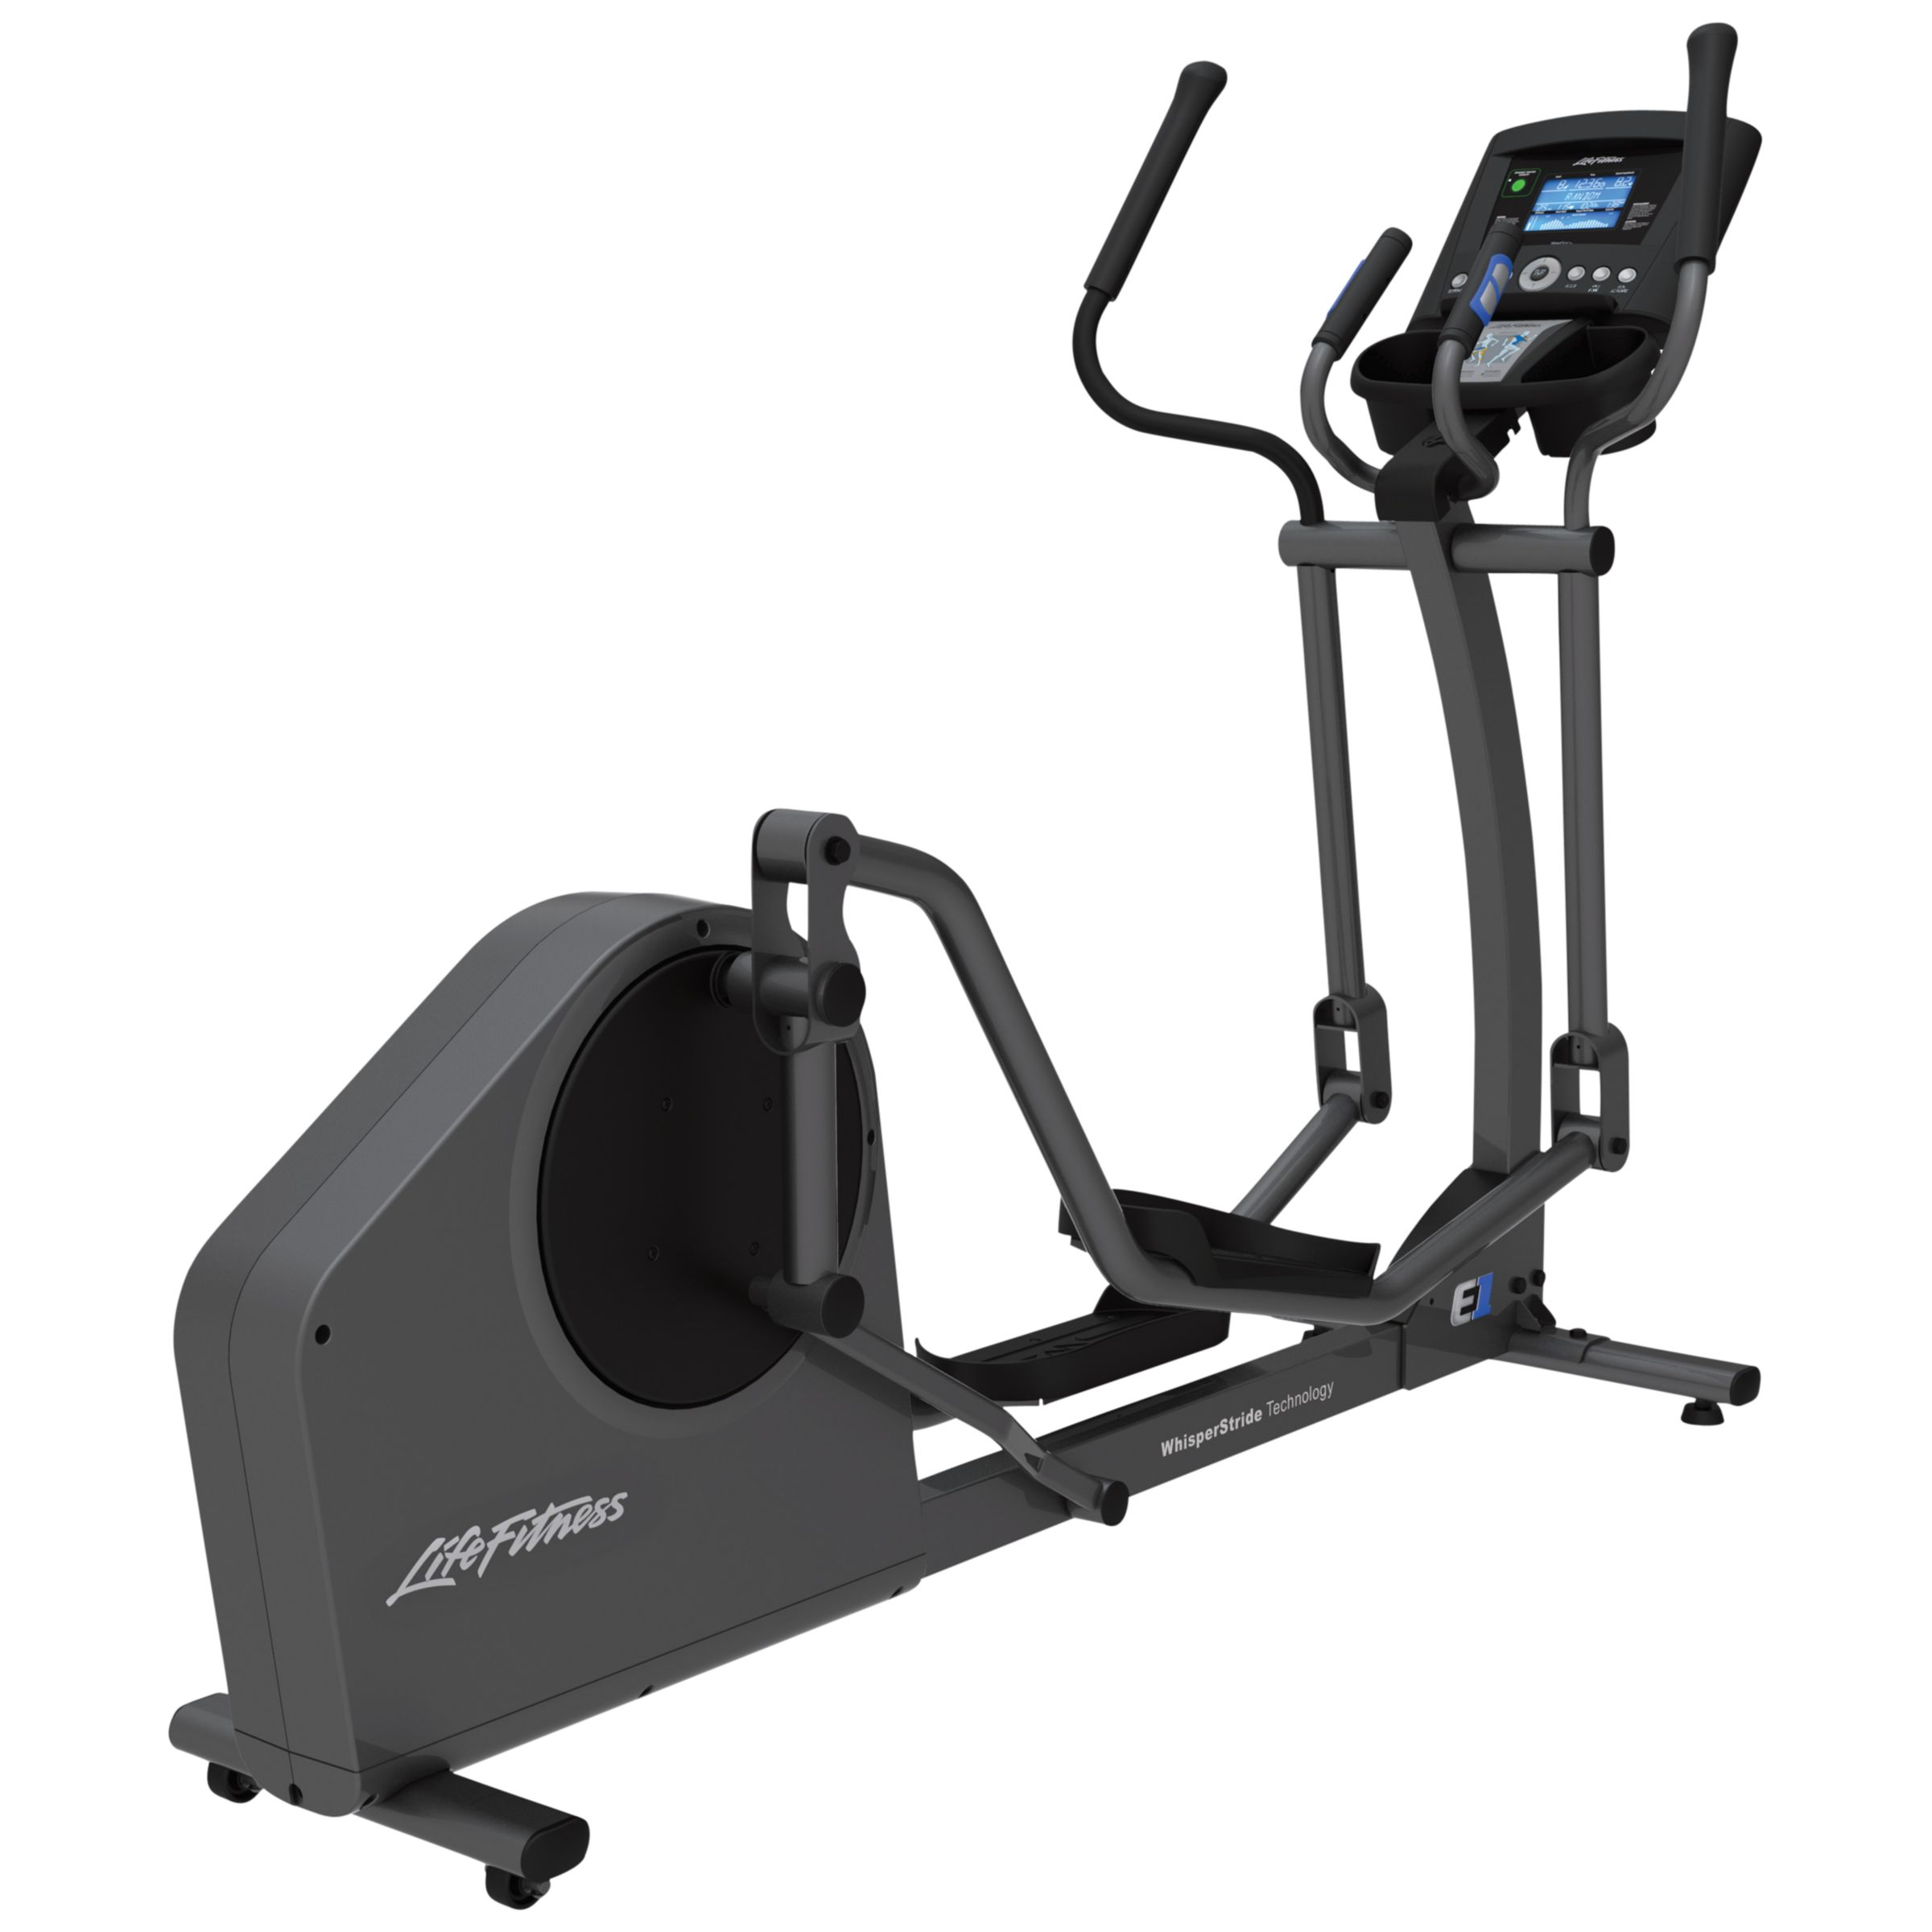 Life Fitness Life Fitness E1 Elliptical Cross Trainer with Go Console